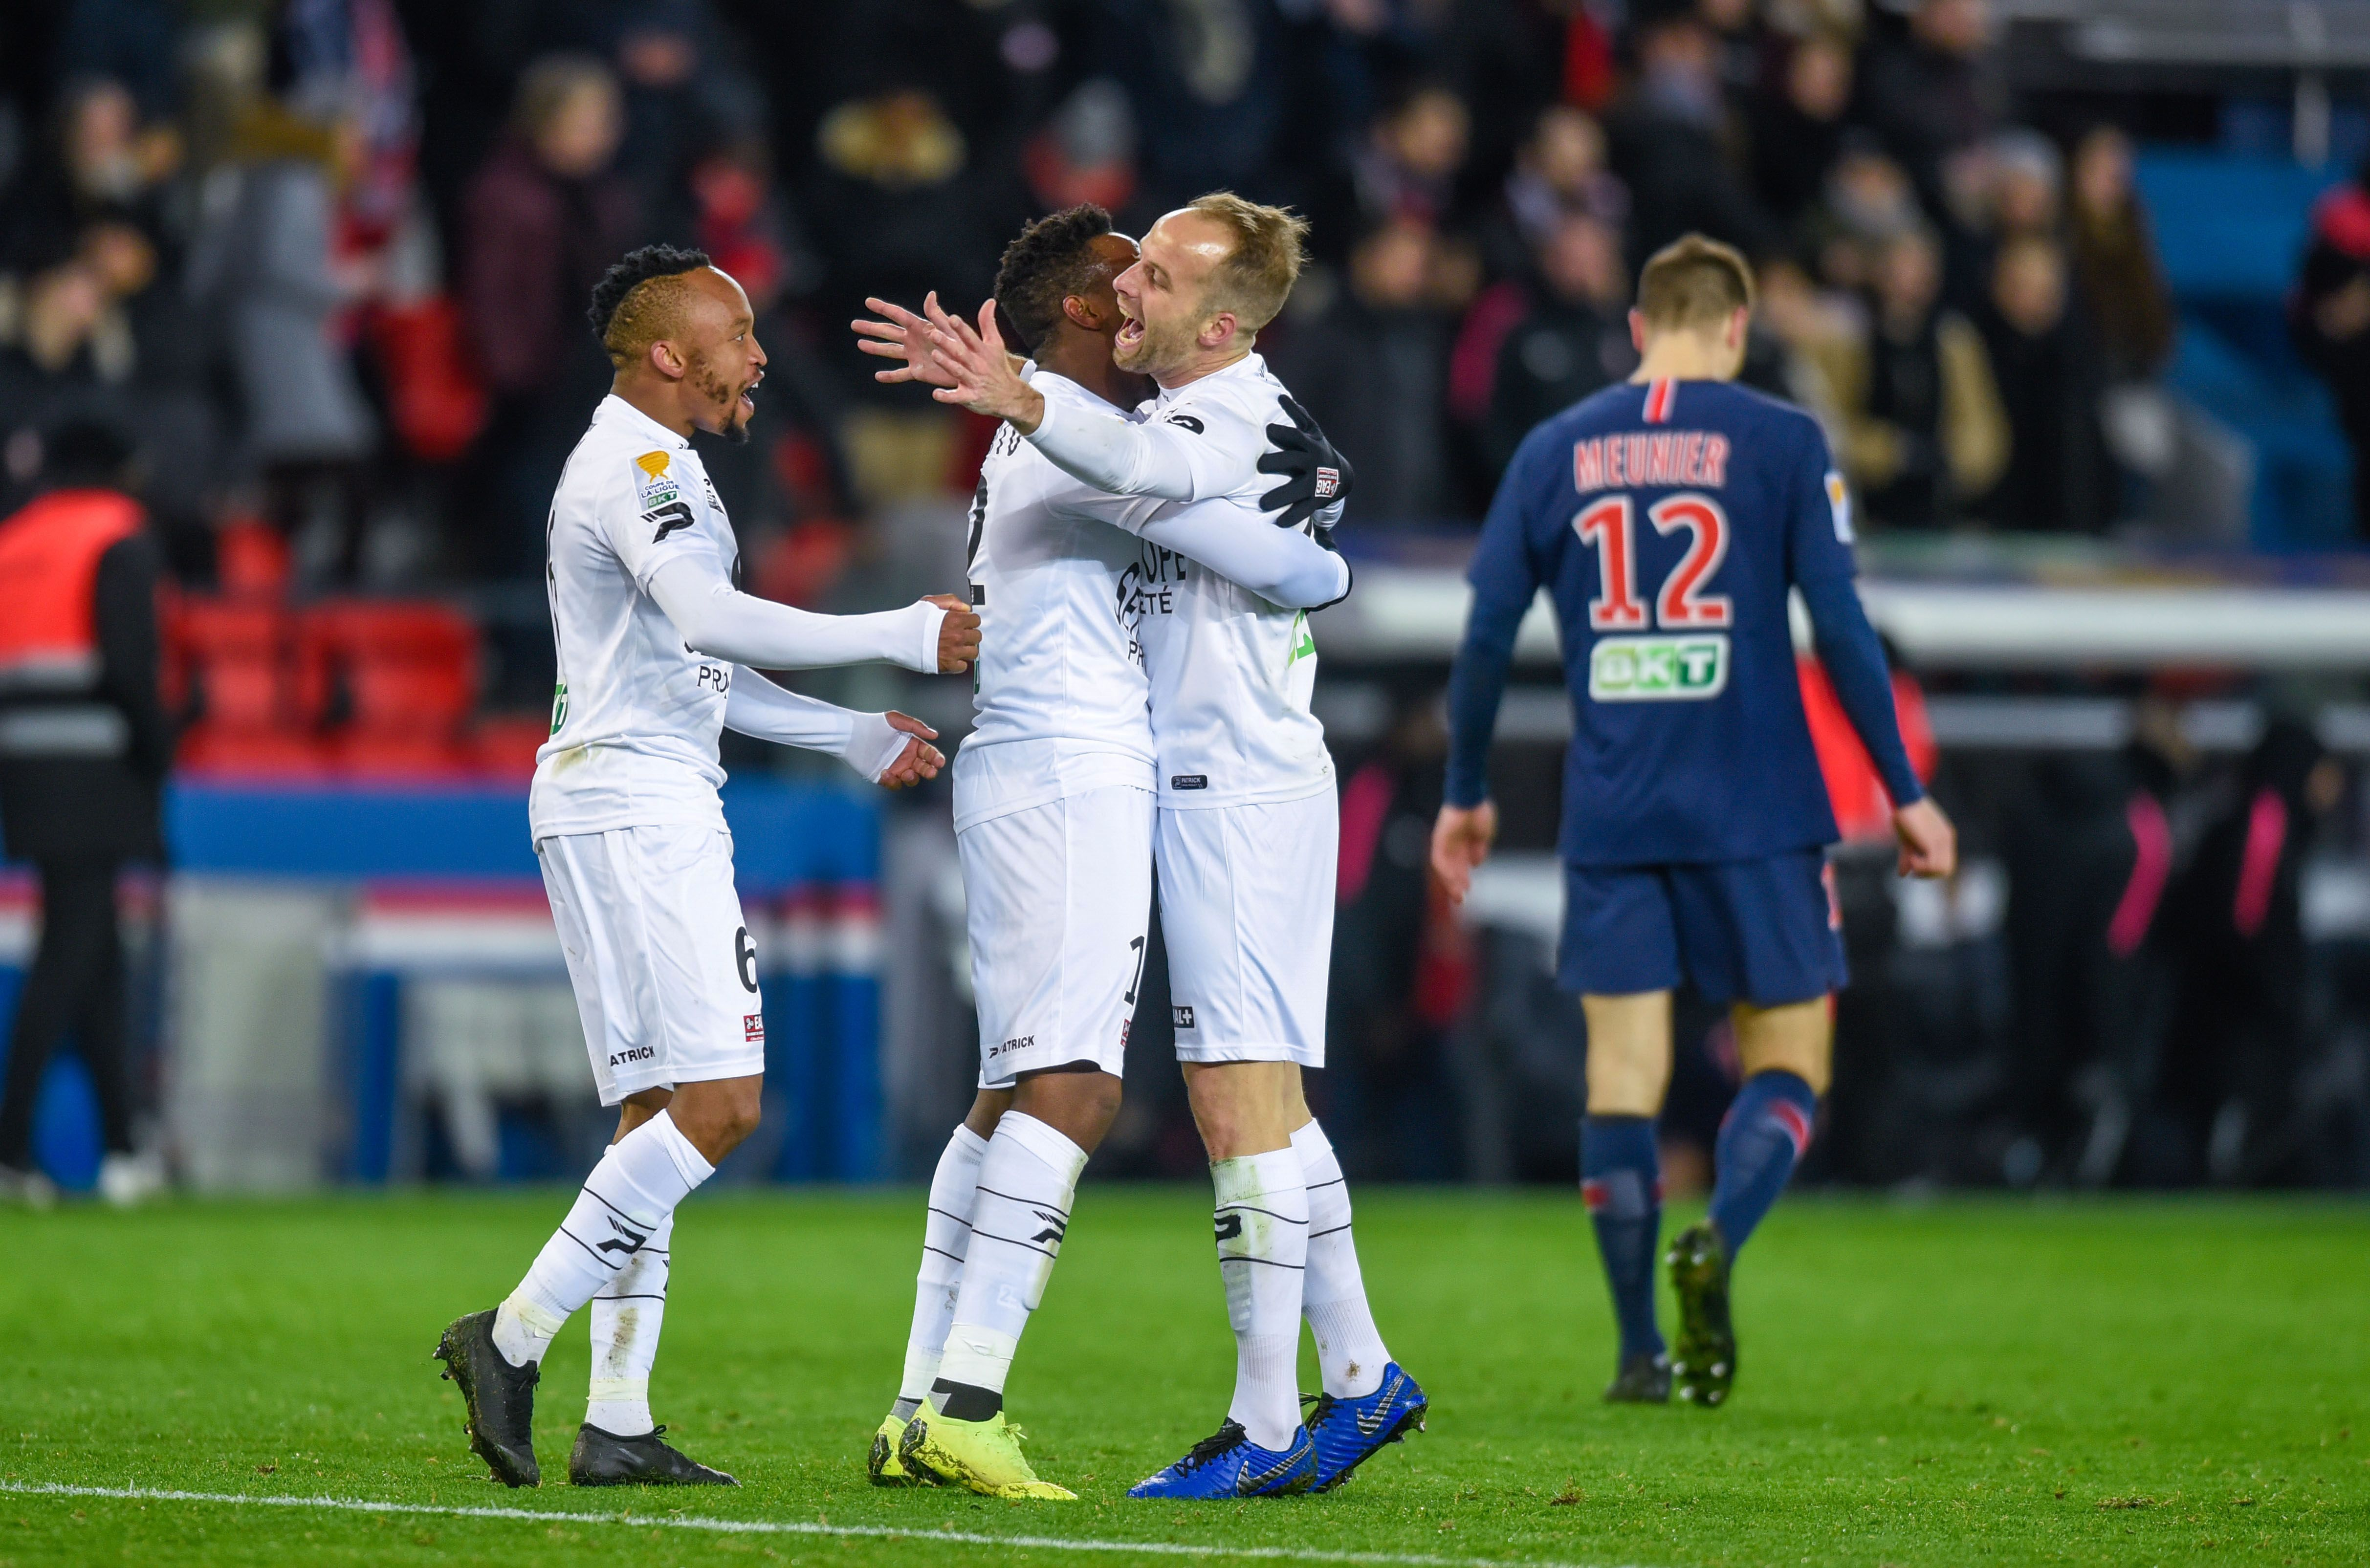 Coupe de la ligue guingamp cr e la sensation en liminant le psg quintuple tenant du titre - Resultat coupe de la ligue en direct ...